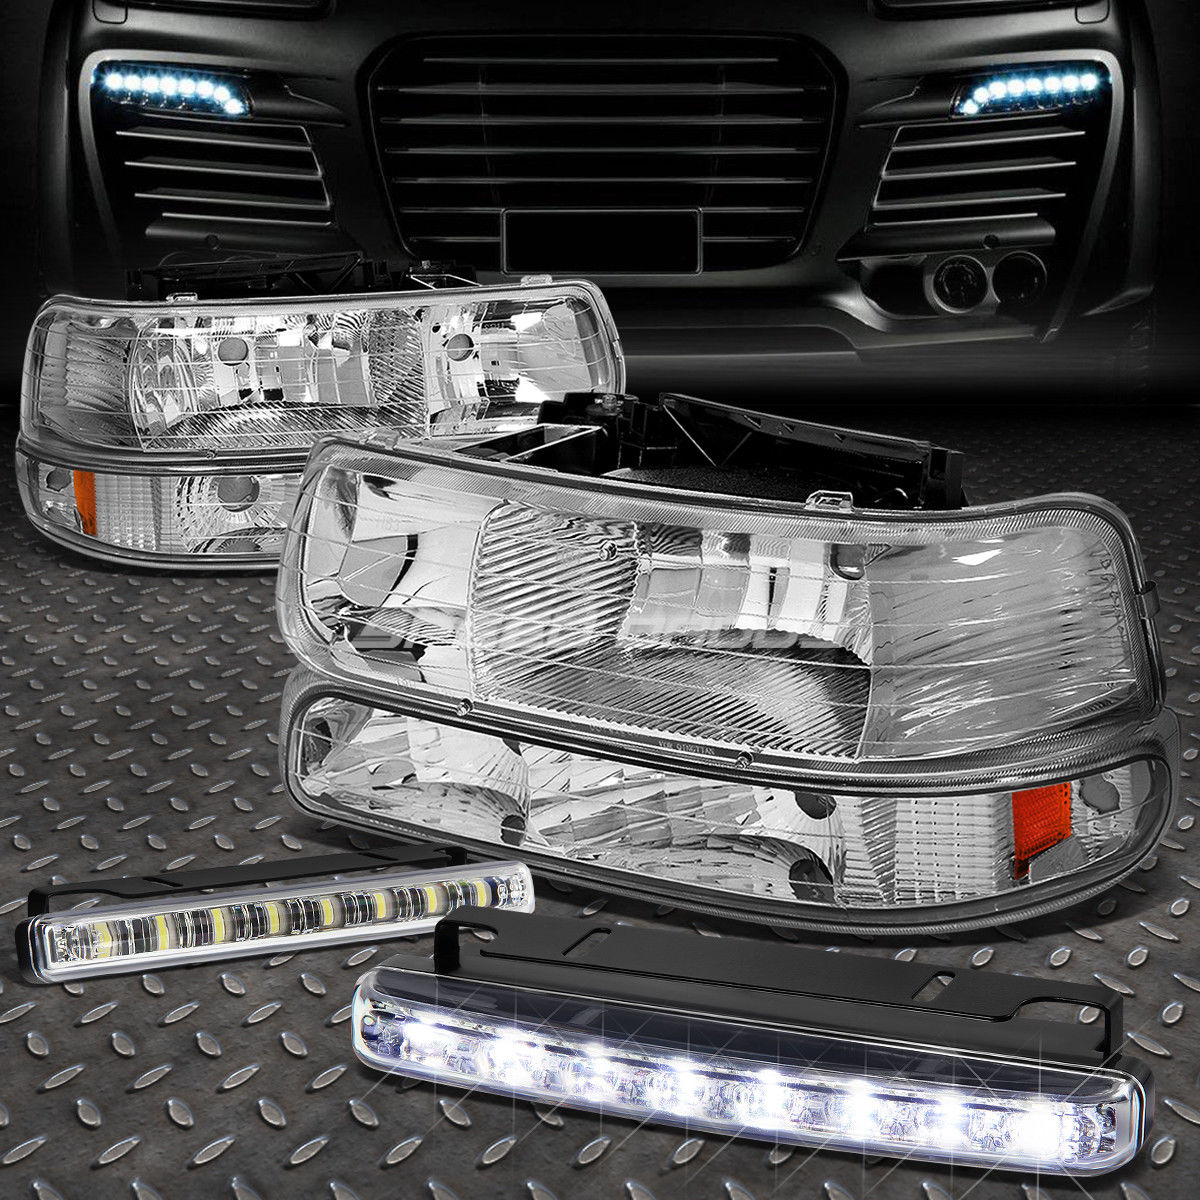 フォグライト CHROME HOUSING AMBER SIGNAL HEADLIGHT+8 LED GRILL FOG LIGHT FOR 99-02 SILVERADO CHROME HOUSINGアンバーシグナルヘッドライト+ 99-02 SILVERADO用8 LEDグリルフォグライト